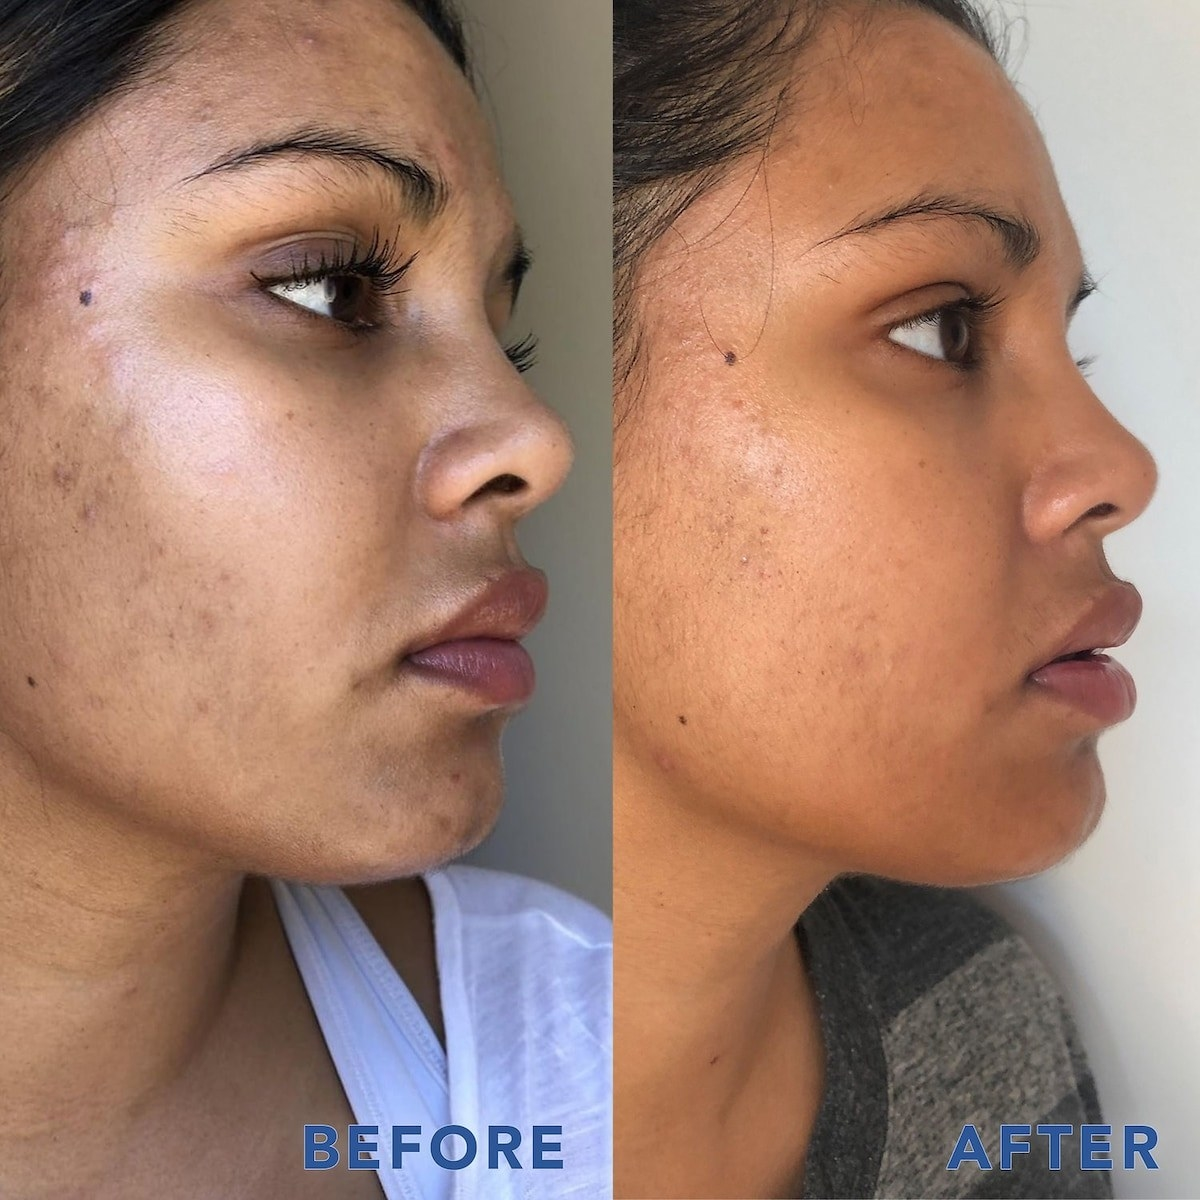 before and after photo of model with dark spots on left and visibly less dark spots on right